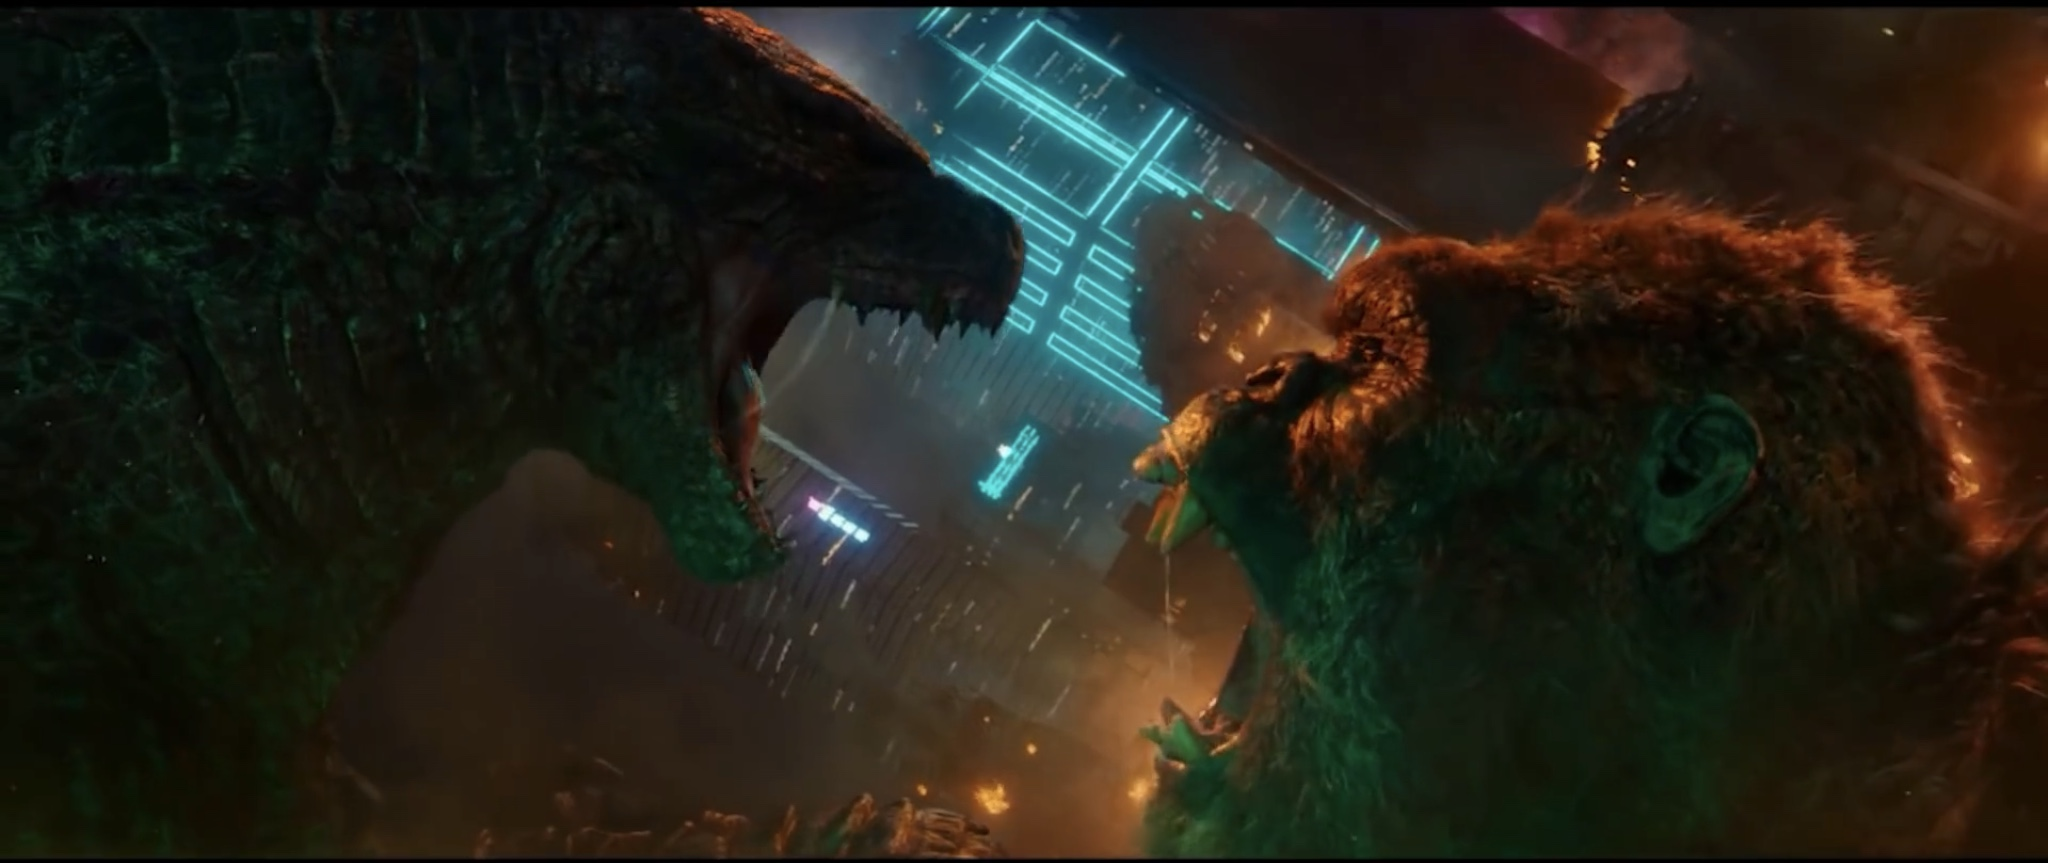 After three movies and an hour and a half, 'Godzilla vs. Kong' delivers |  Reel Entropy